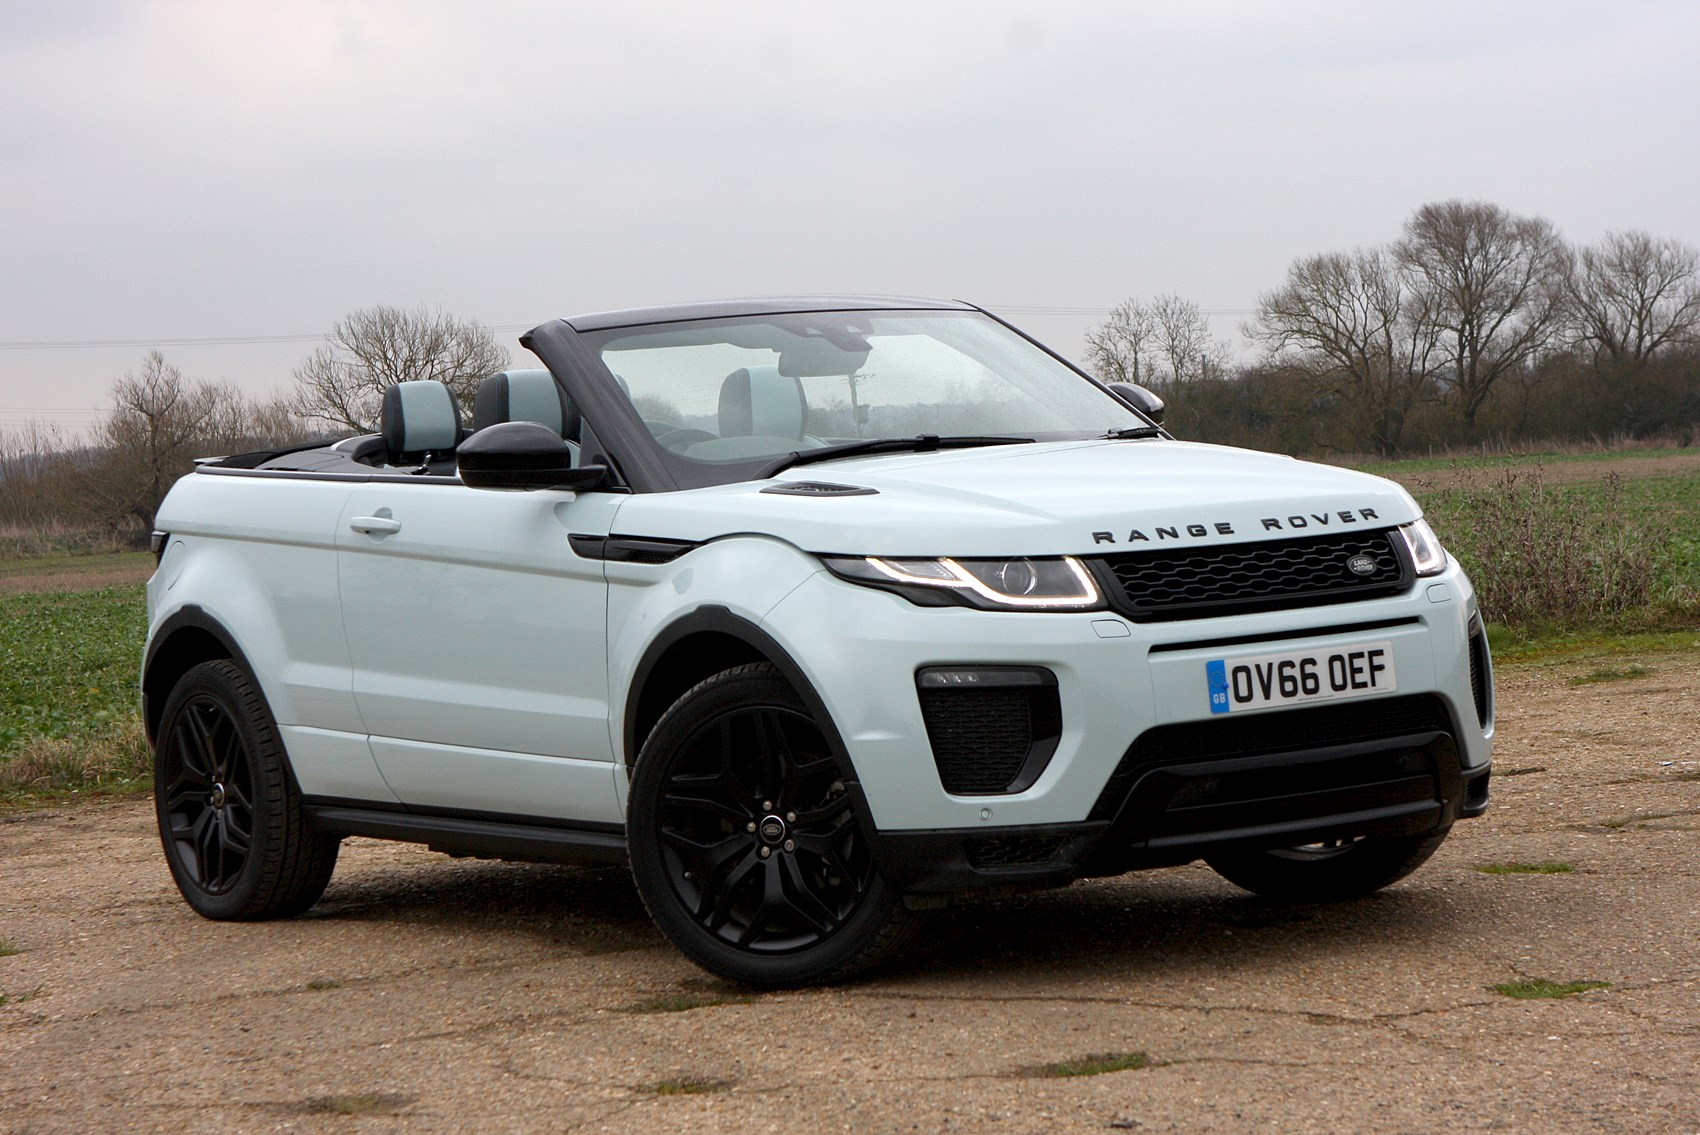 land rover range rover evoque convertible review parkers. Black Bedroom Furniture Sets. Home Design Ideas